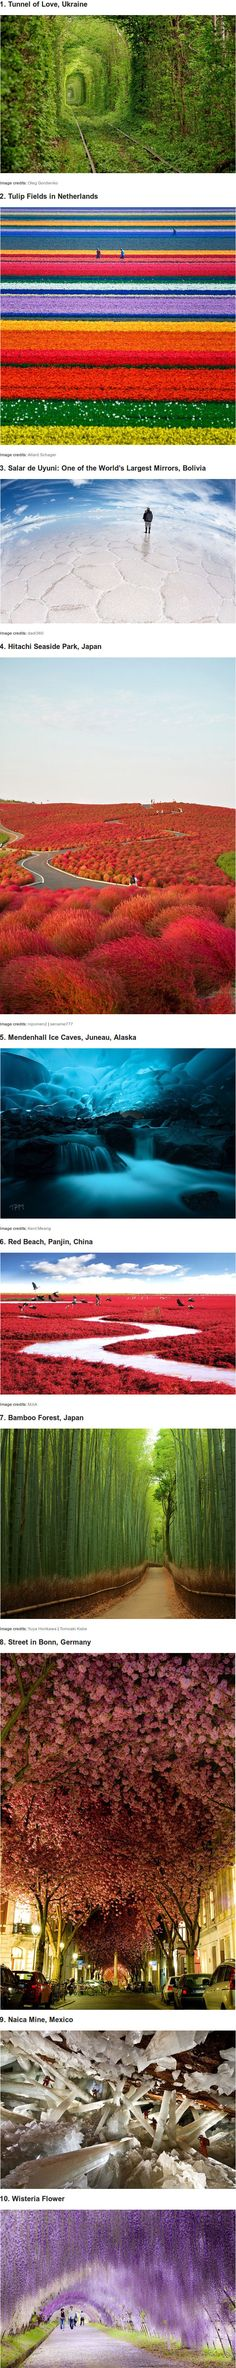 10 of the most unbelievable places on Earth